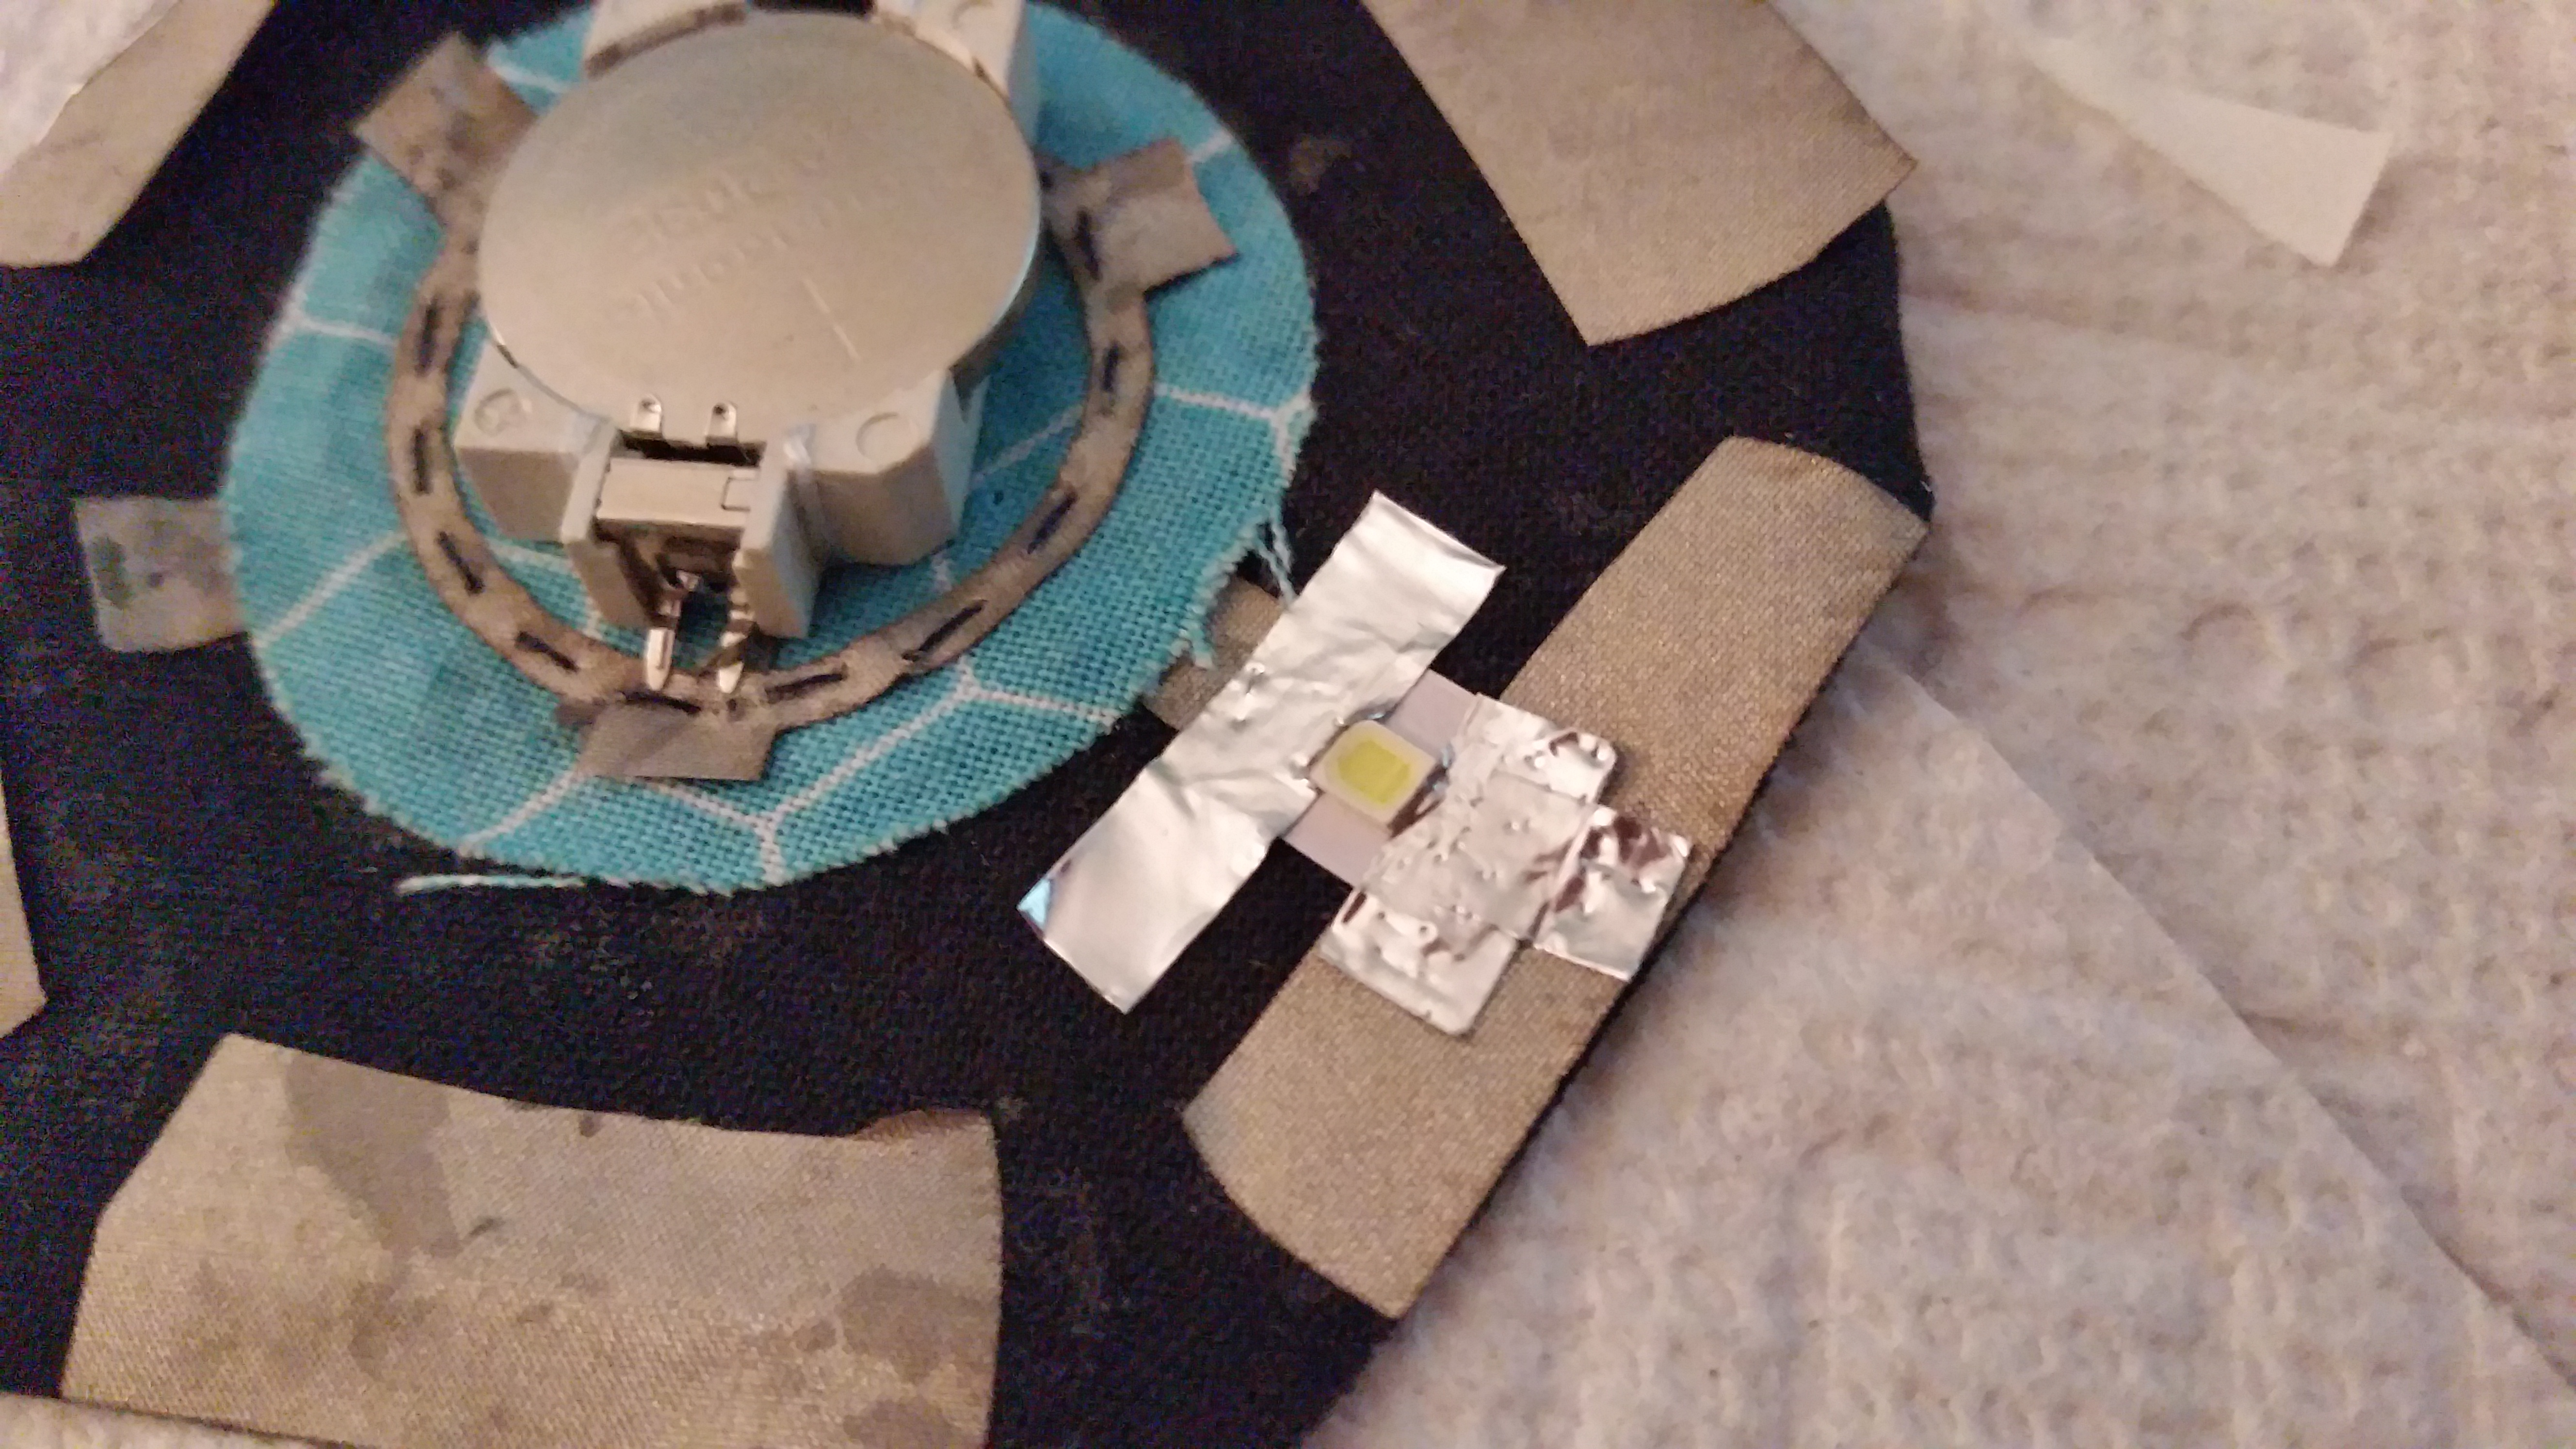 Conductive Tape on a Power Source